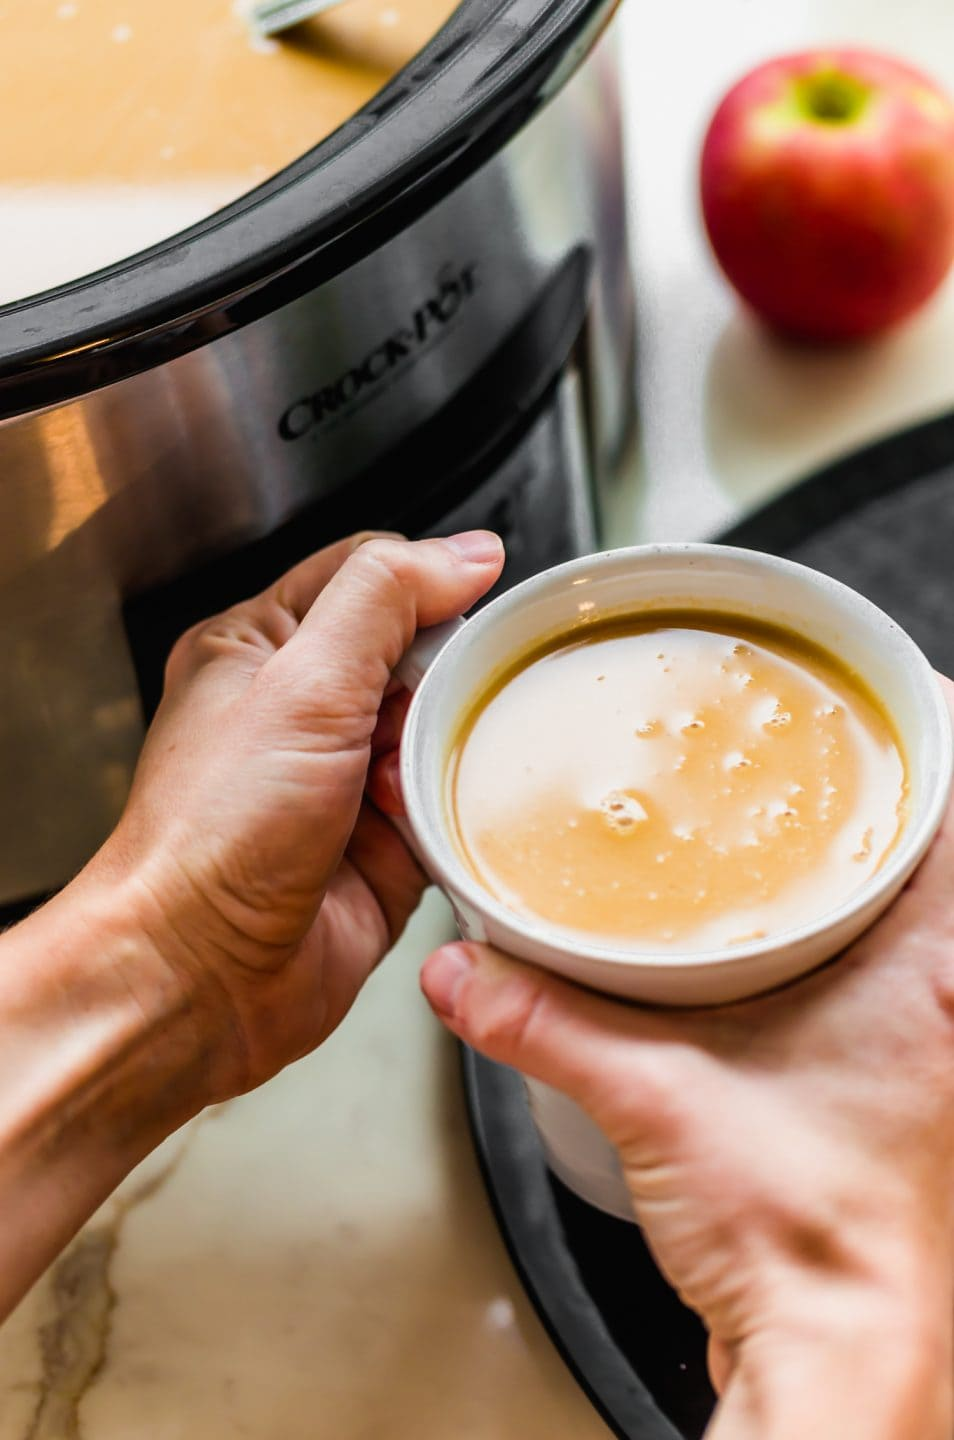 Two hands holding a white mug with salted caramel apple cider next to a Crock Pot.